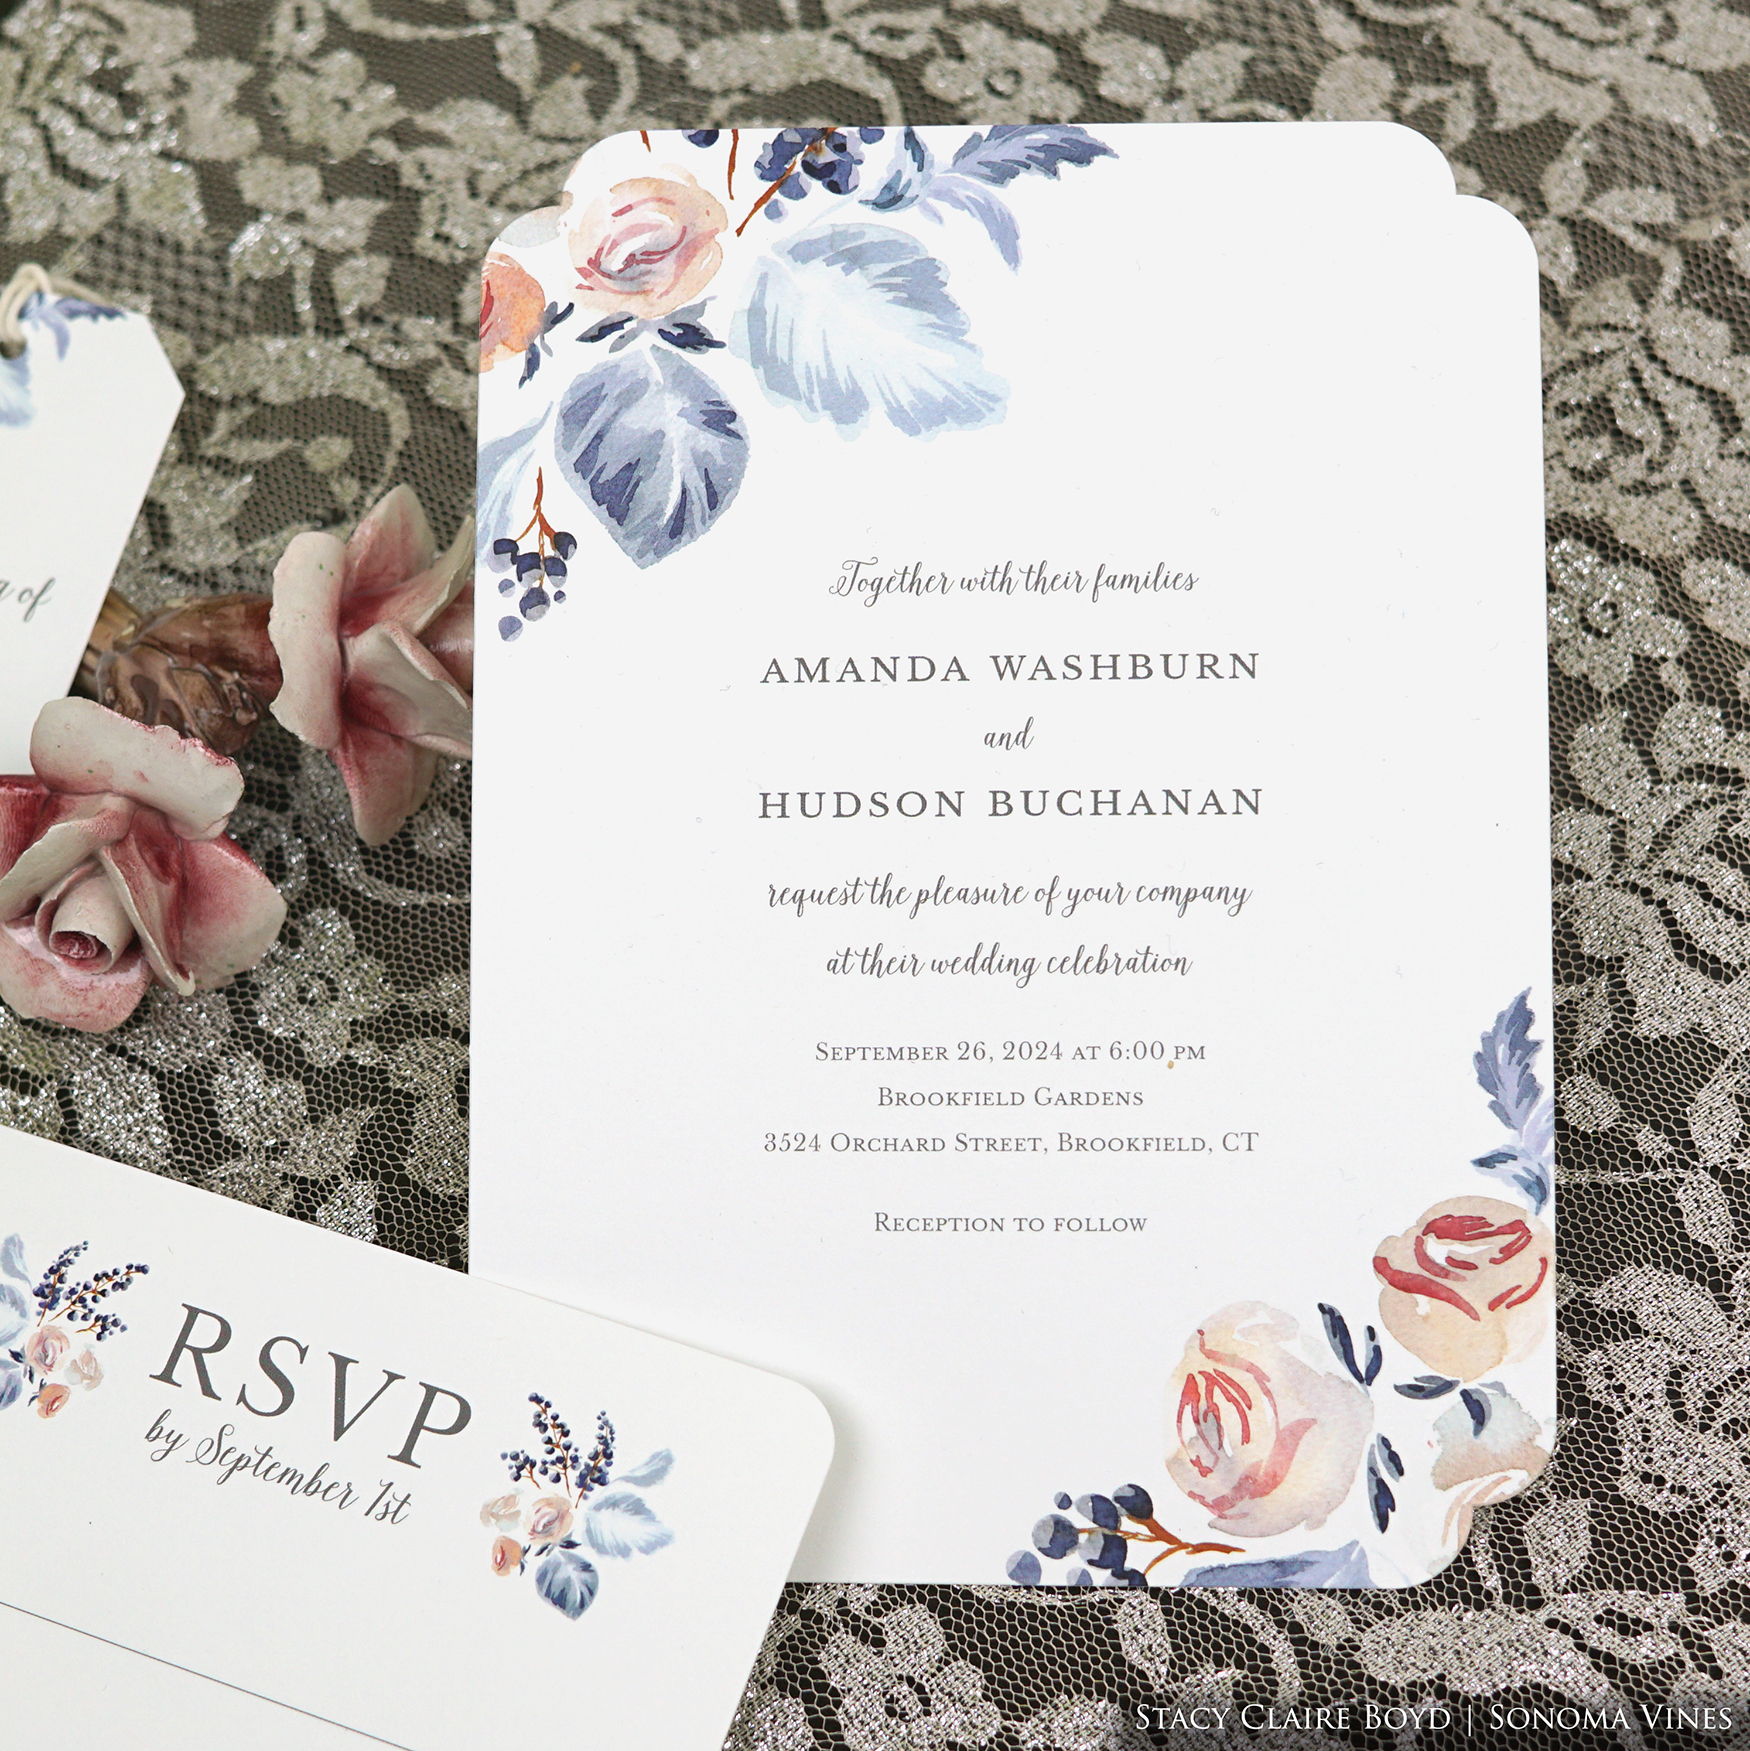 Sonoma Vines wedding invitation features folk-art style watercolor flowers in blues, lavenders, and rose colors.